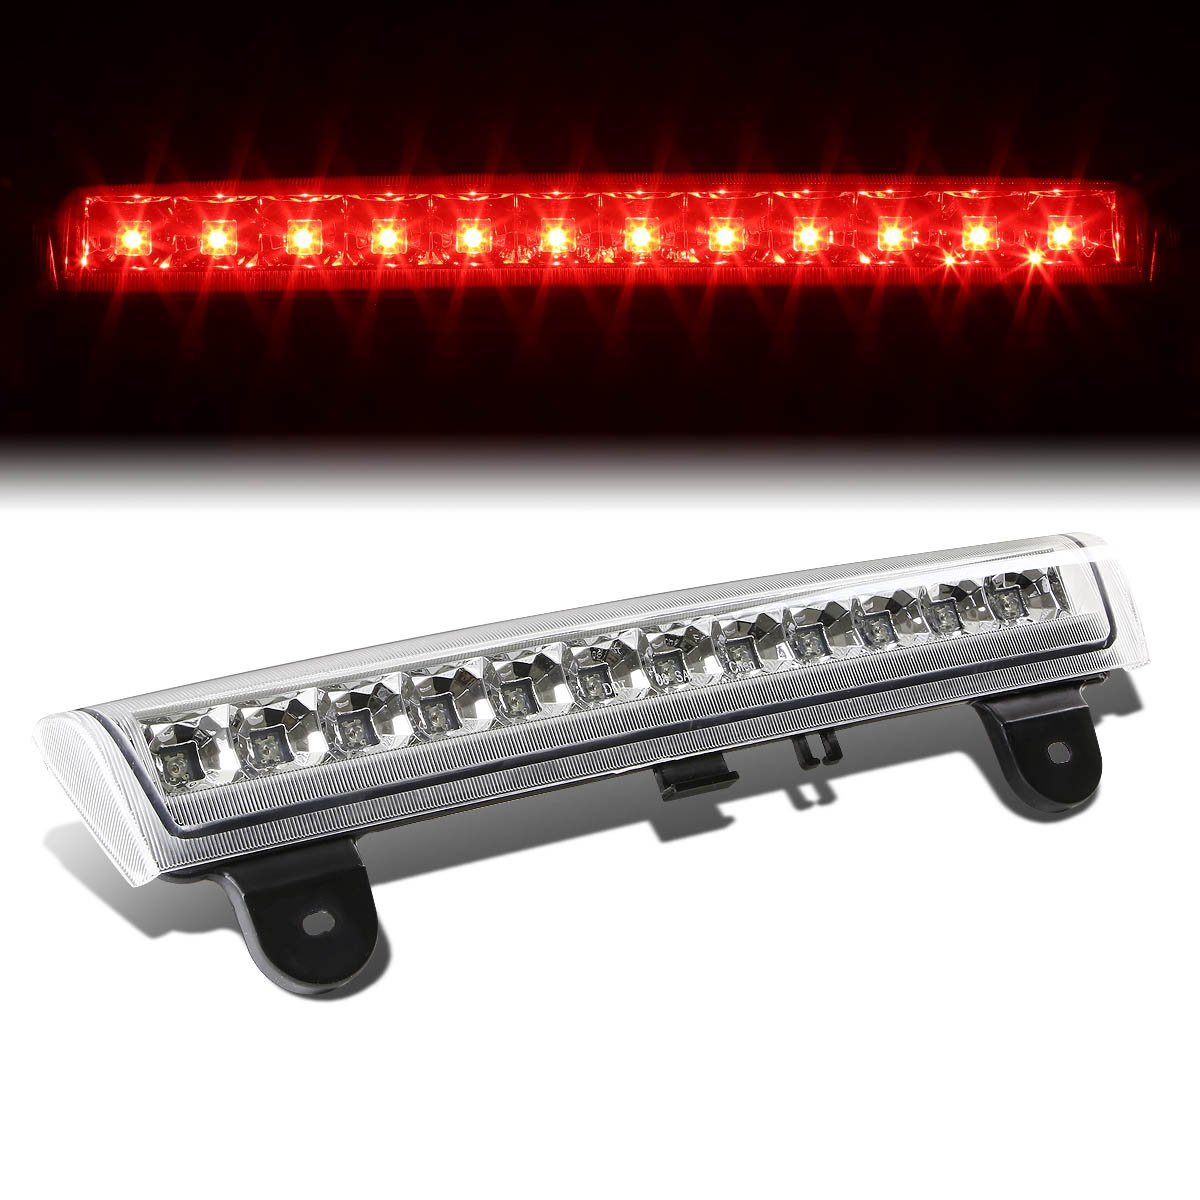 For Chevy Tahoe/Suburban / GMC Yukon GMT800 High Mount LED 3rd Brake Light (Black Housing Smoke Lens) Auto Dynasty